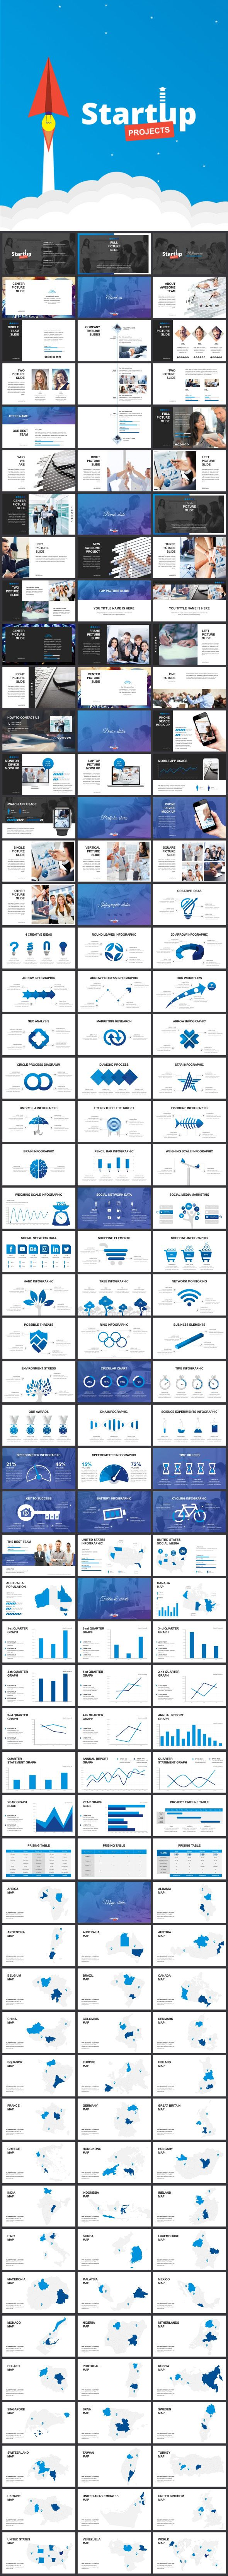 Start Up Projects - Business PowerPoint Templates Download here: https://graphicriver.net/item/start-up-projects/19775936?ref=classicdesignp